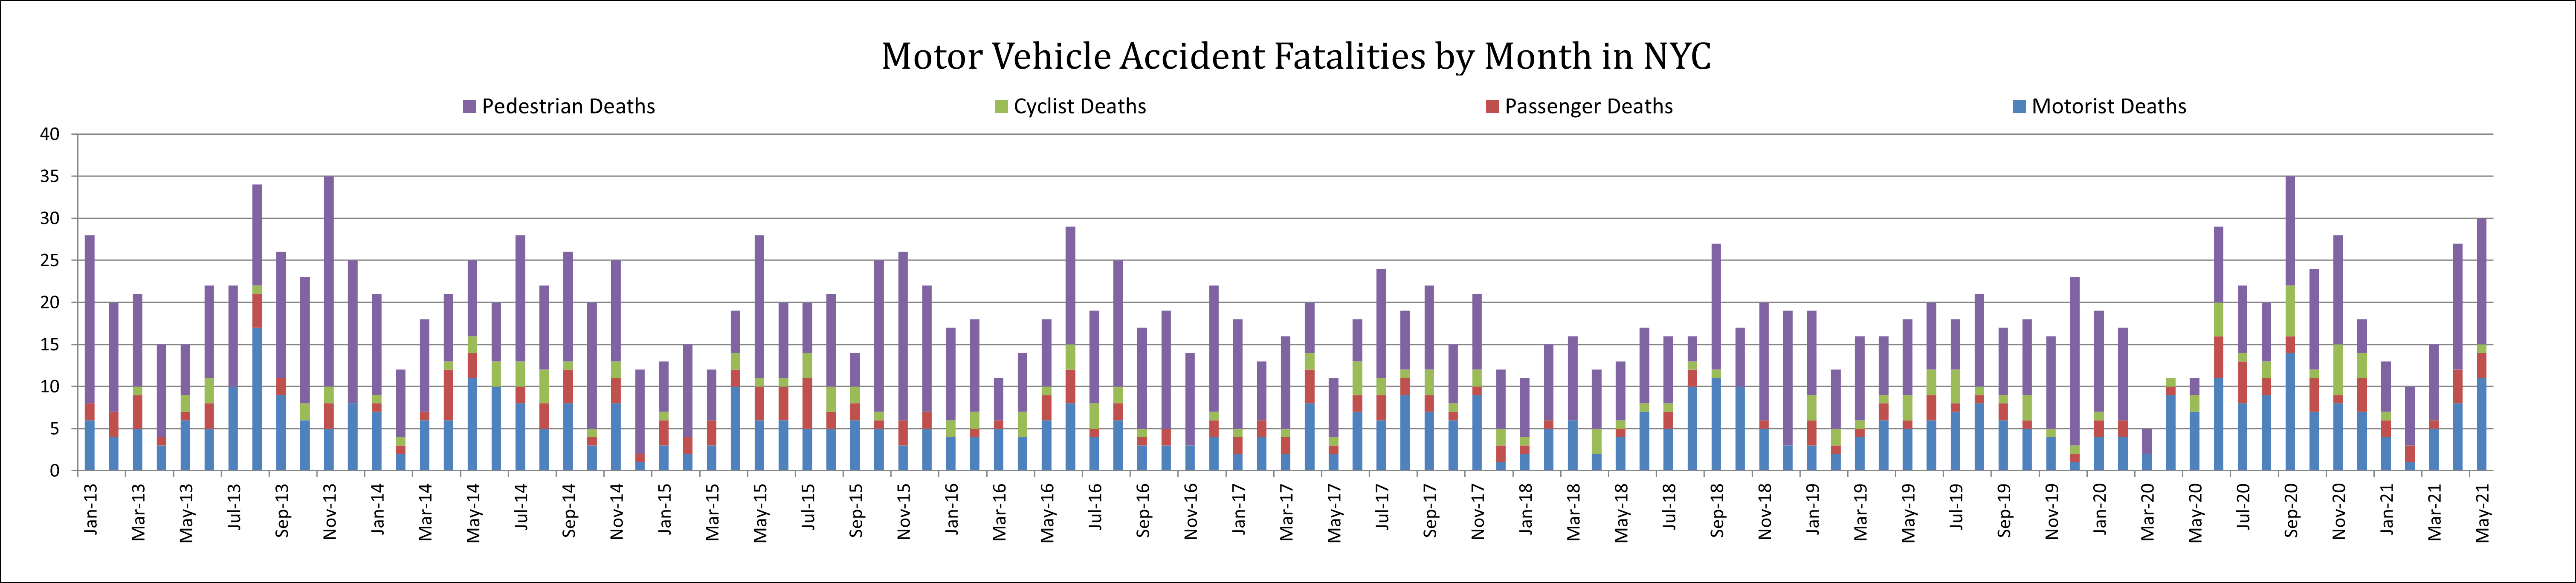 auto accident fatalities NYC May 21